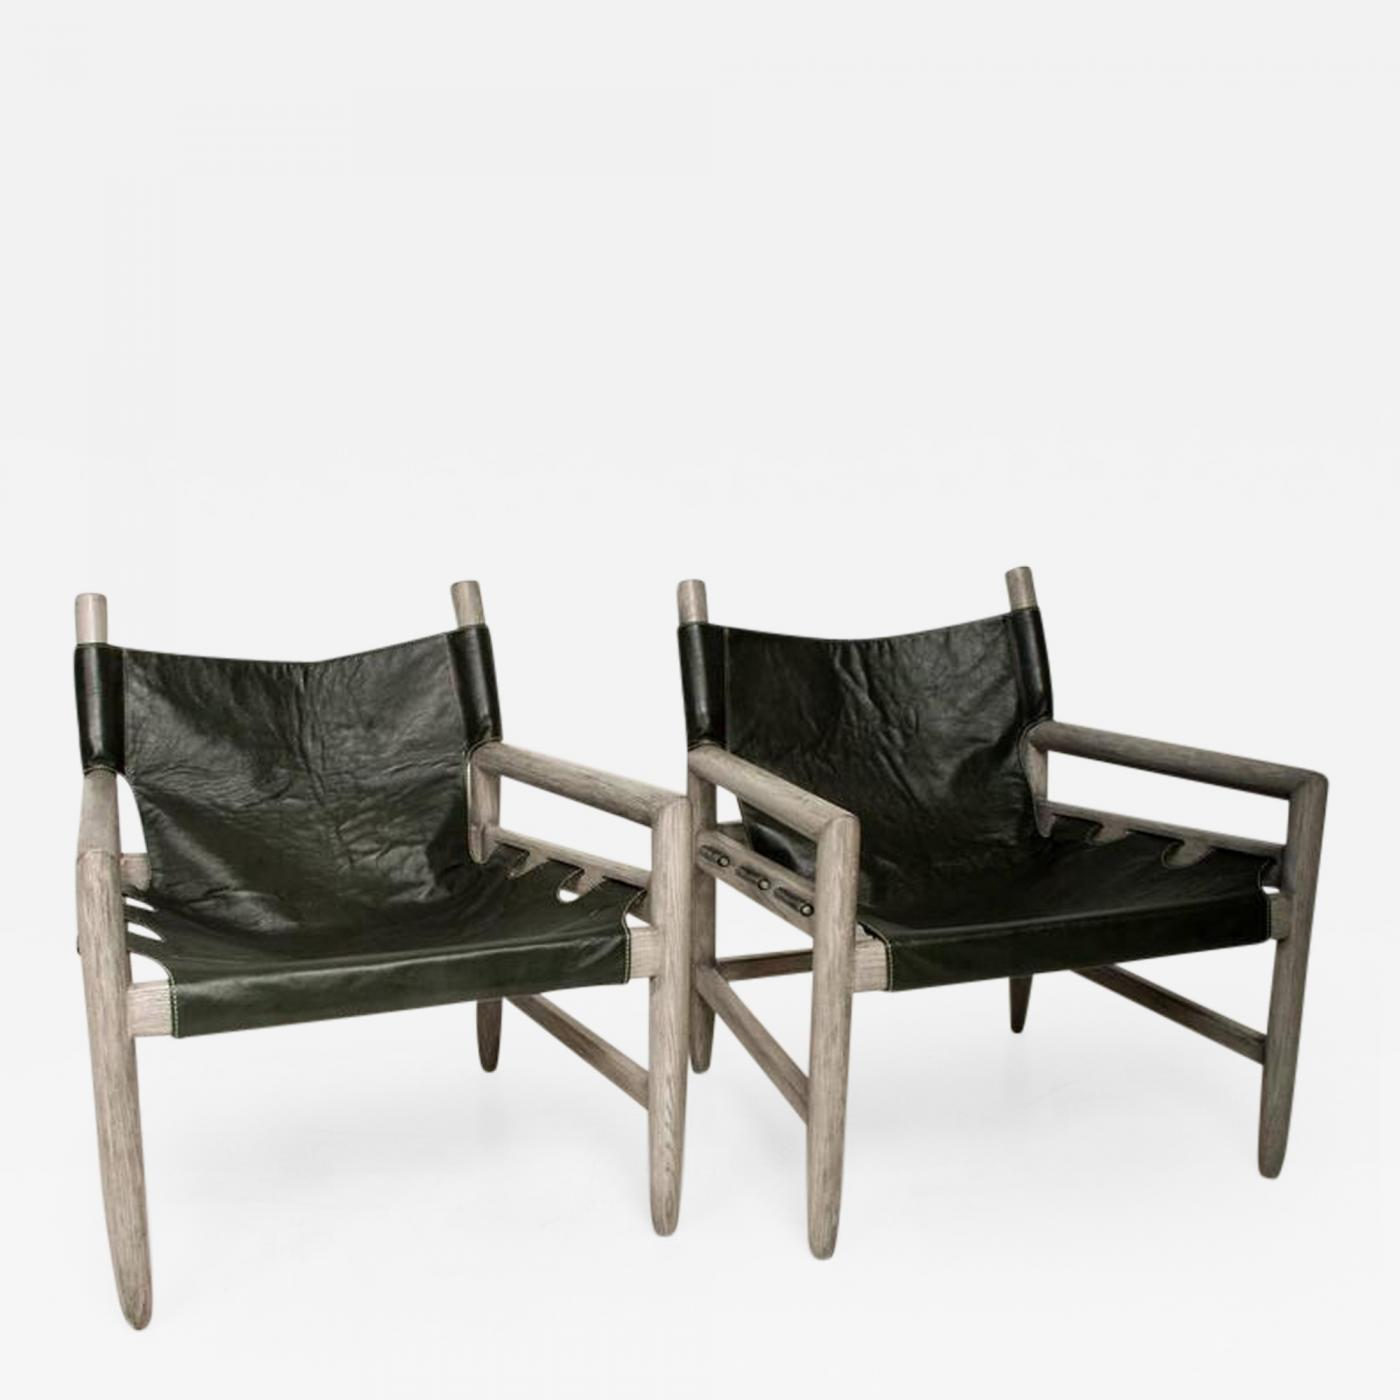 Michel Arnoult Mid Century Modern Pair of Safari Lounge Chairs